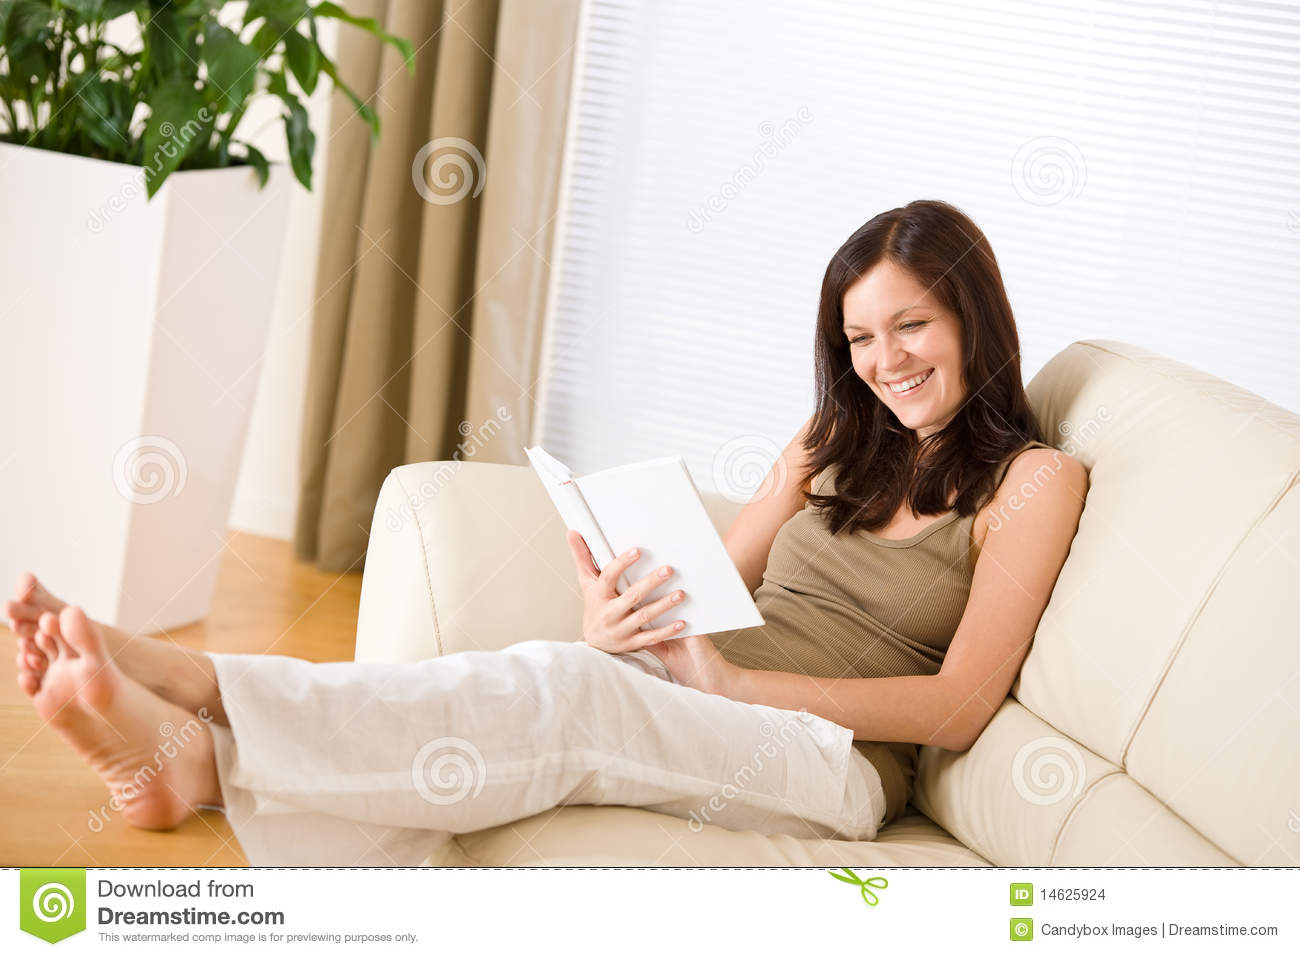 10cebdb46026 Young Happy Woman Read Book On Sofa Stock Photo - Image of woman ...